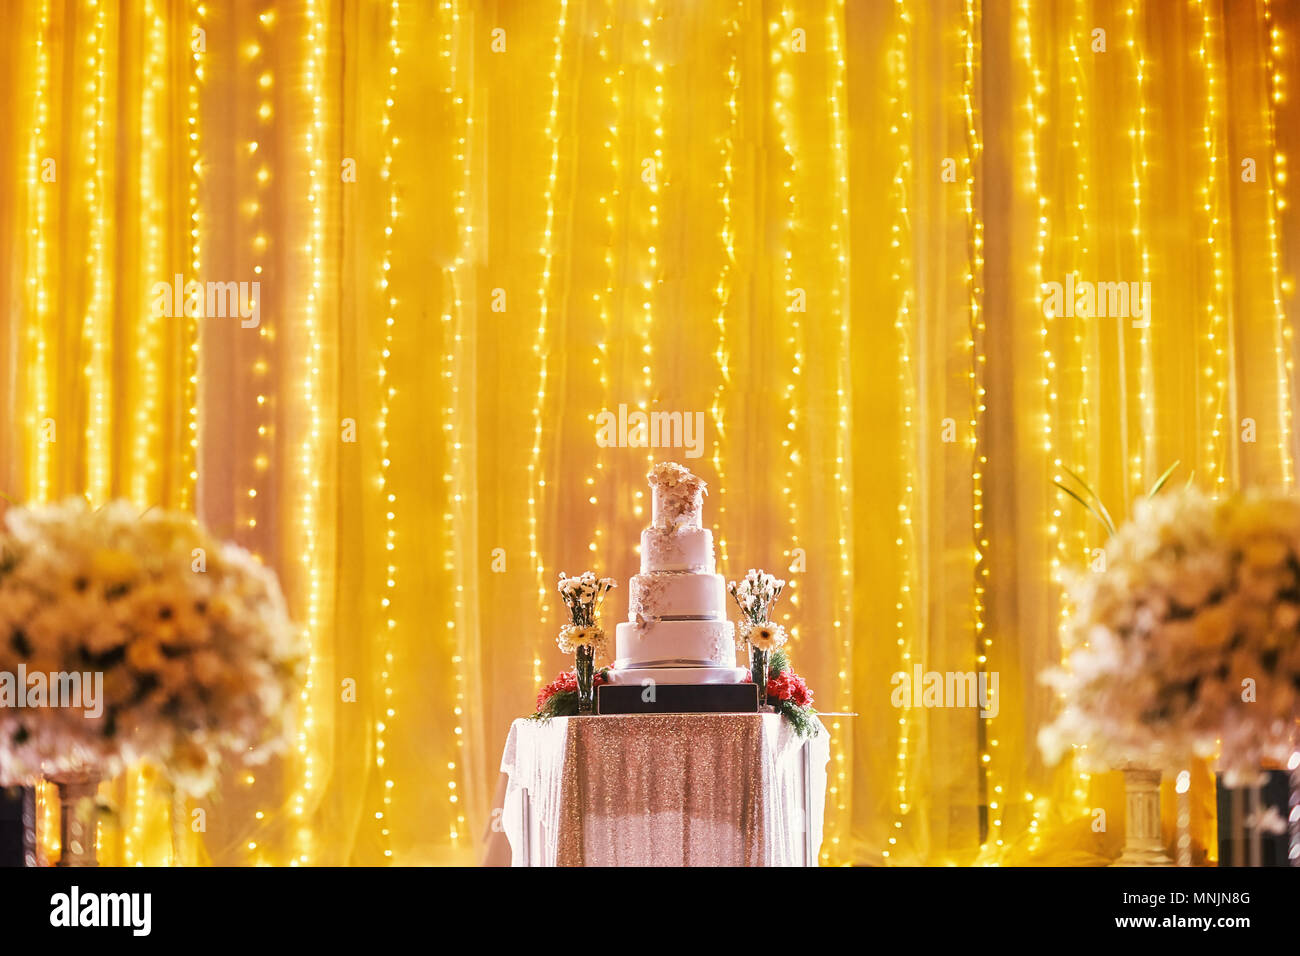 Beautiful Four Layers Wedding On The Table Stage Decoration With LED Light In Yellow Golden Theme Part Of Biuquet Flower Blurry Foreground